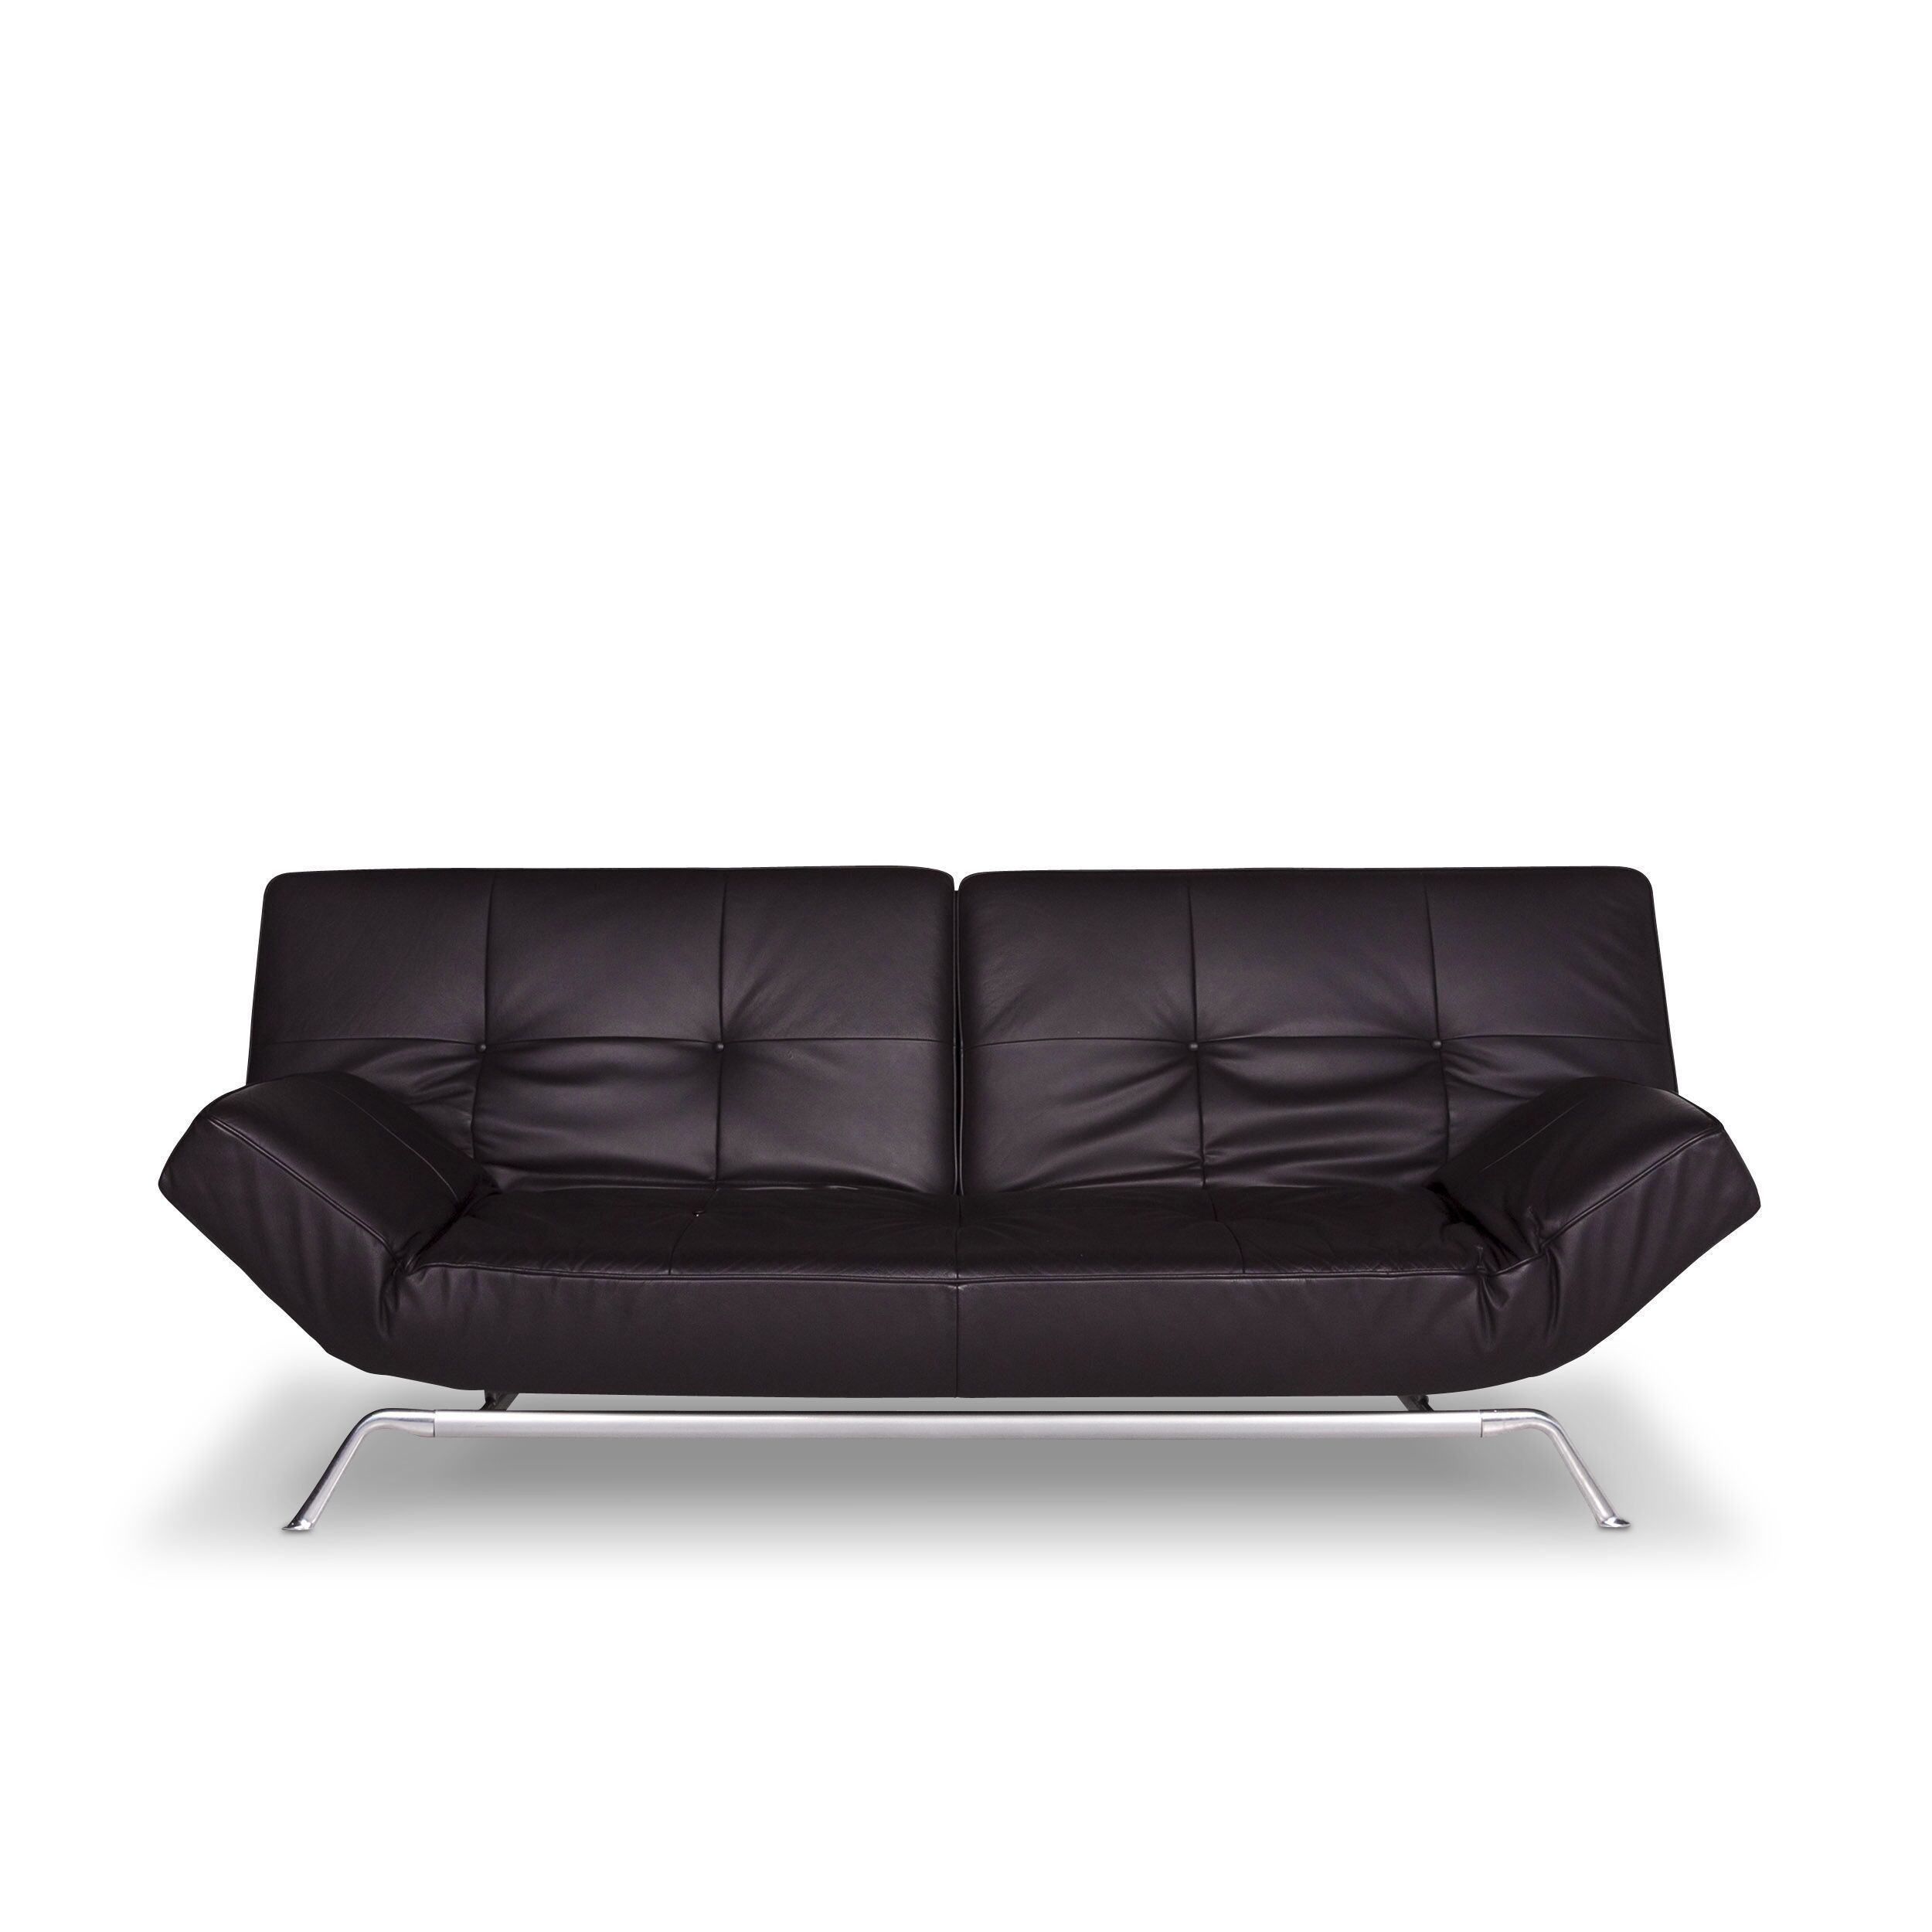 Ligne Roset Smala Leather Sofa Eggplant Two Seater Bed Function Couch 9720